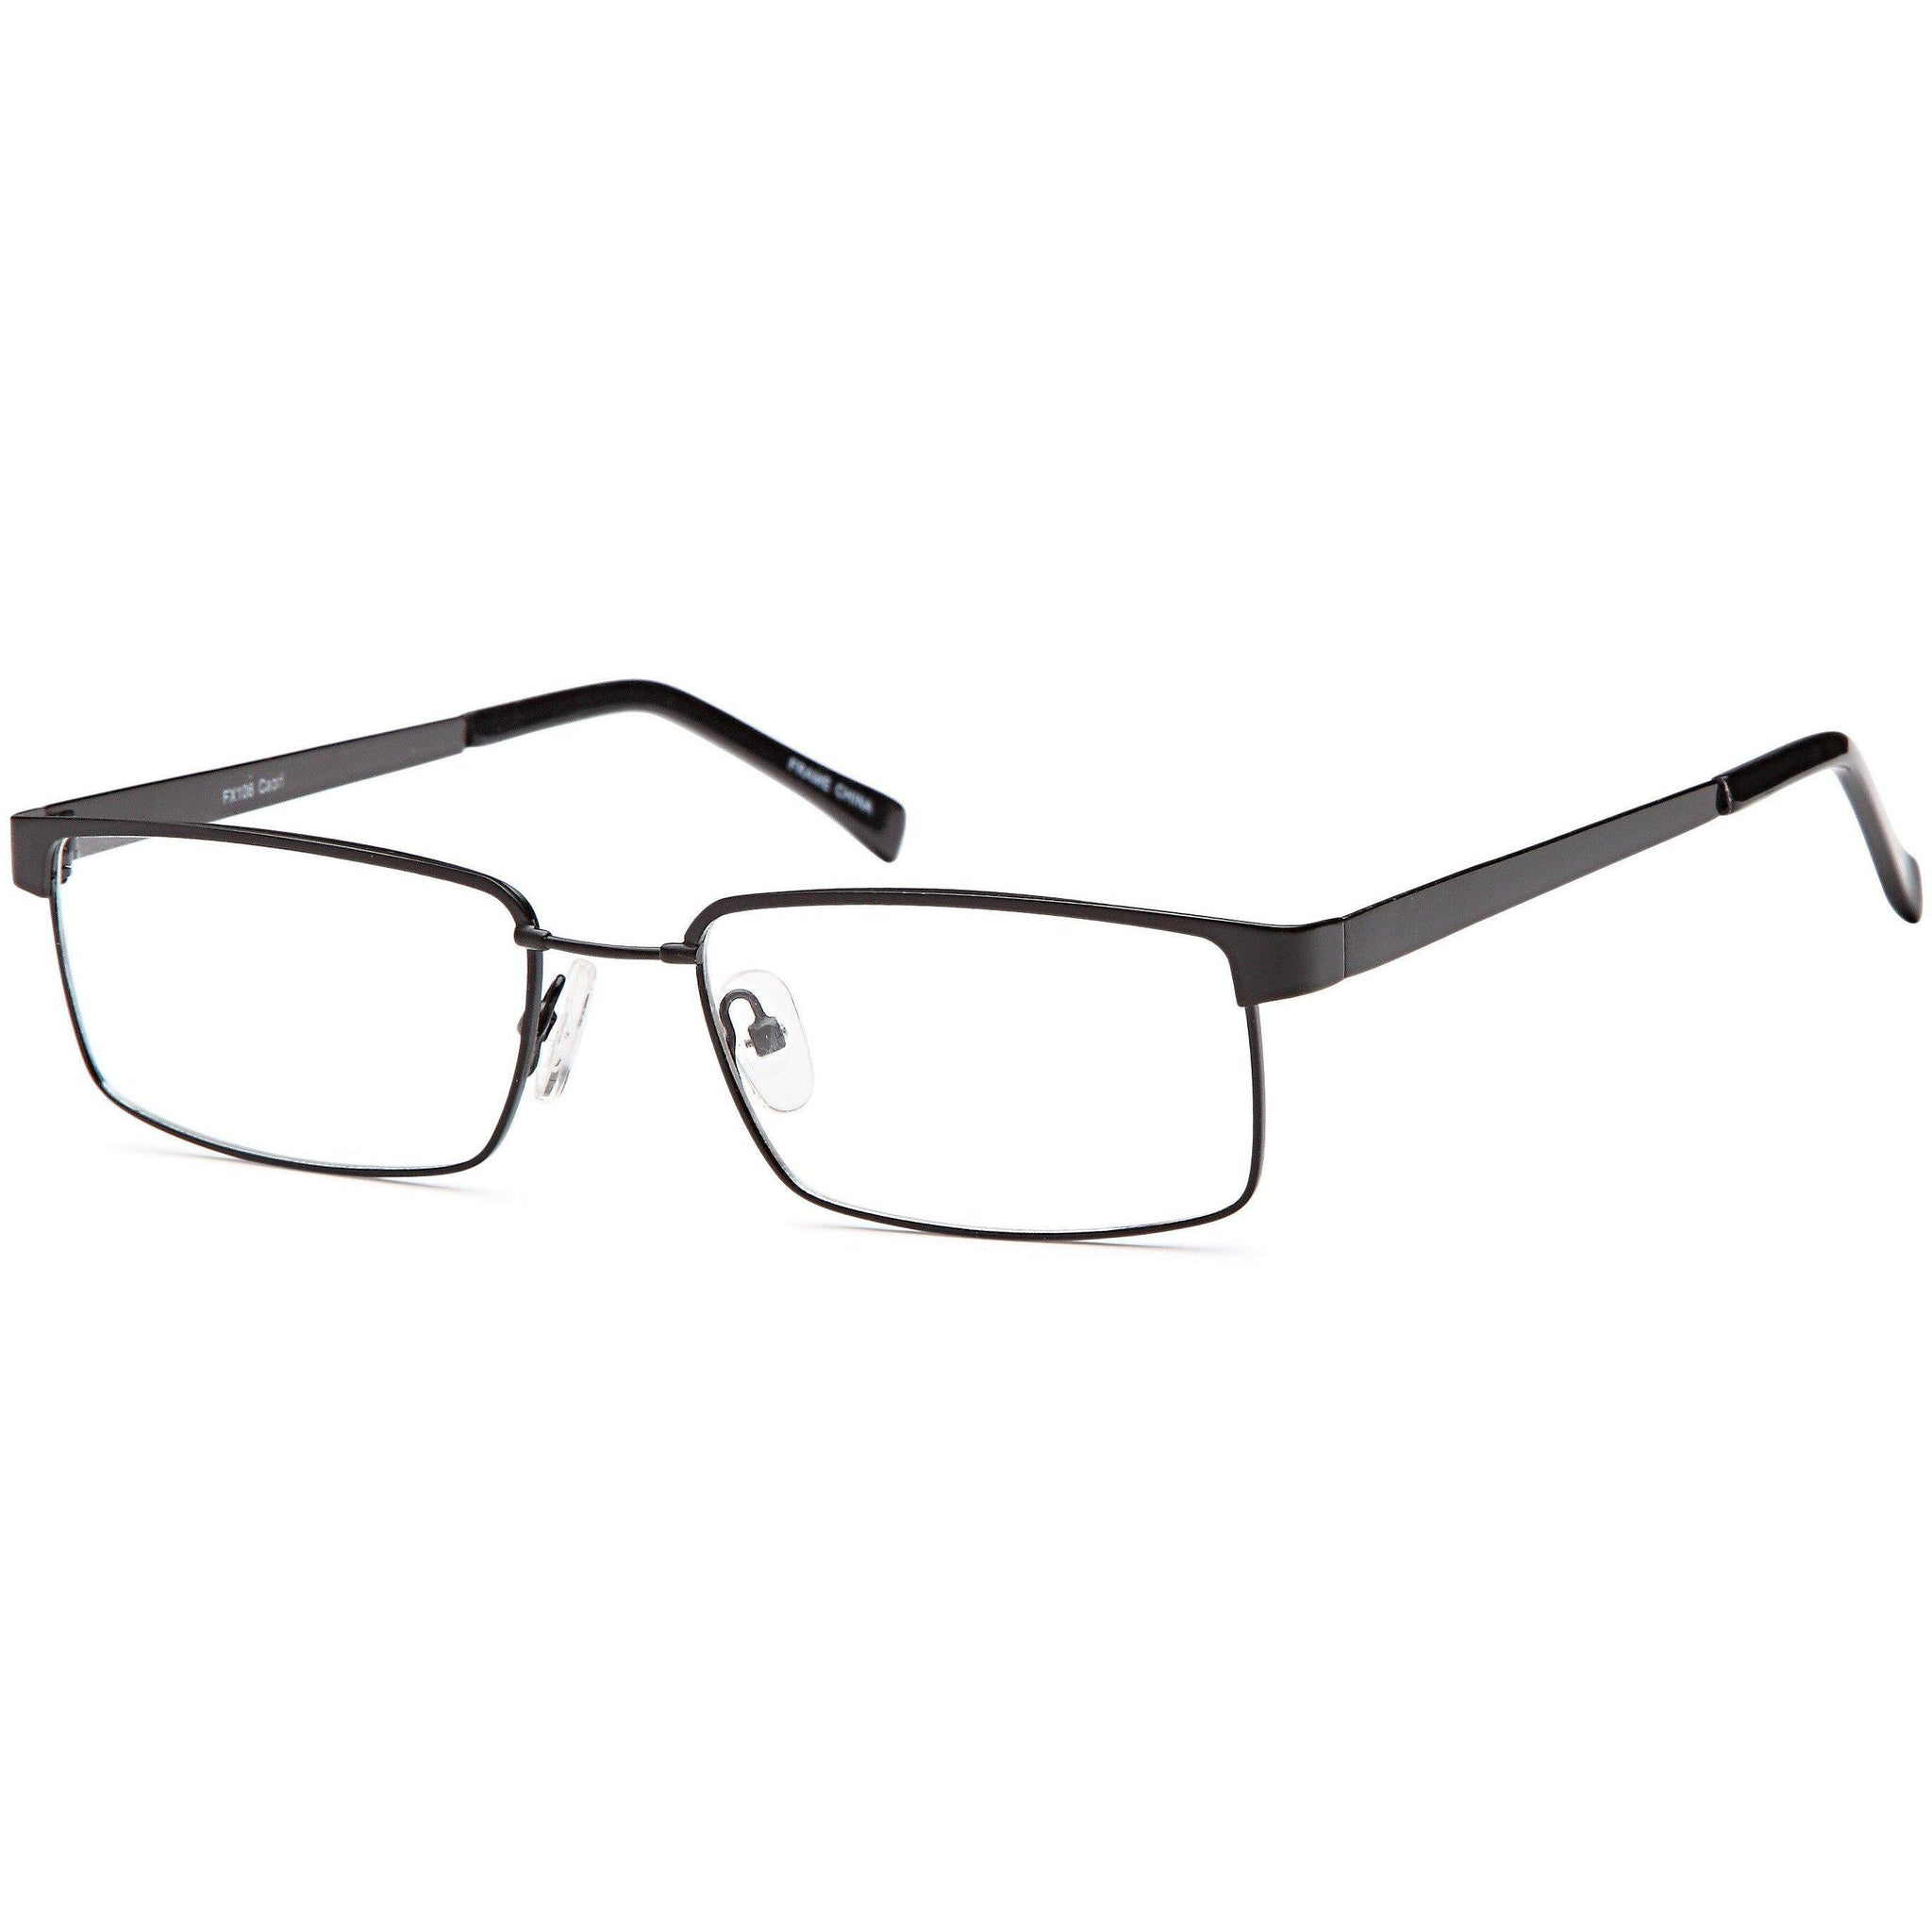 Titanium Prescription Glasses FX 106 Eyeglasses Frame